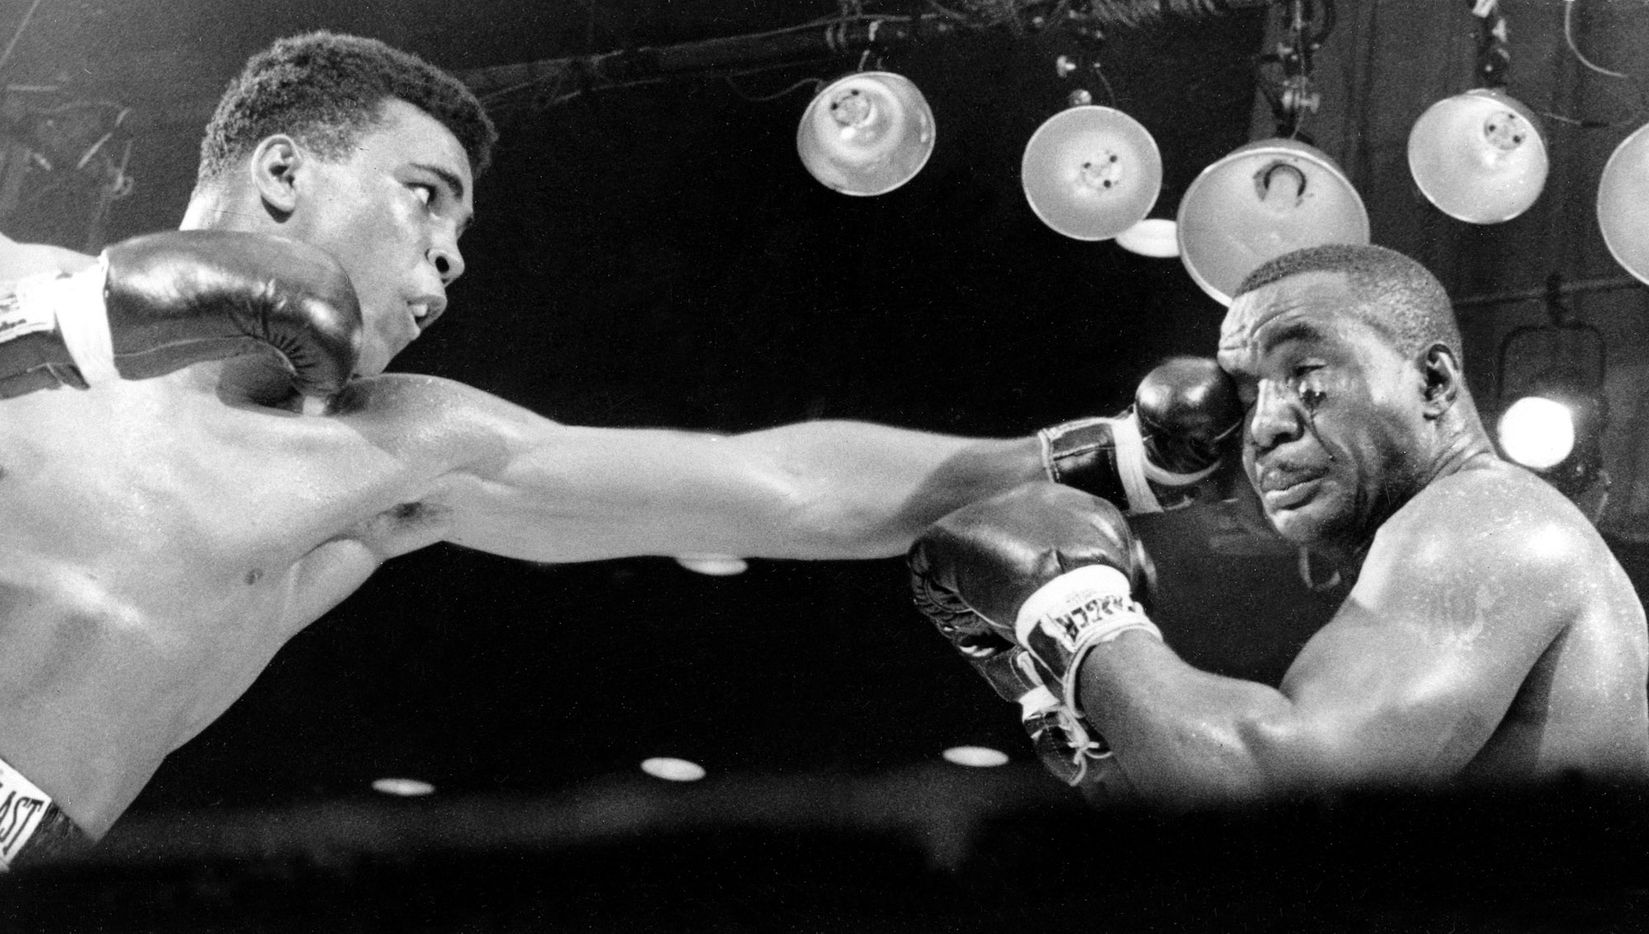 Cassius Clay, left, connects on a punch to the face of Sonny Liston in the third round before a TKO in the seventh round of their heavyweight championship fight in Miami Beach, Fla., on Feb. 25, 1964.